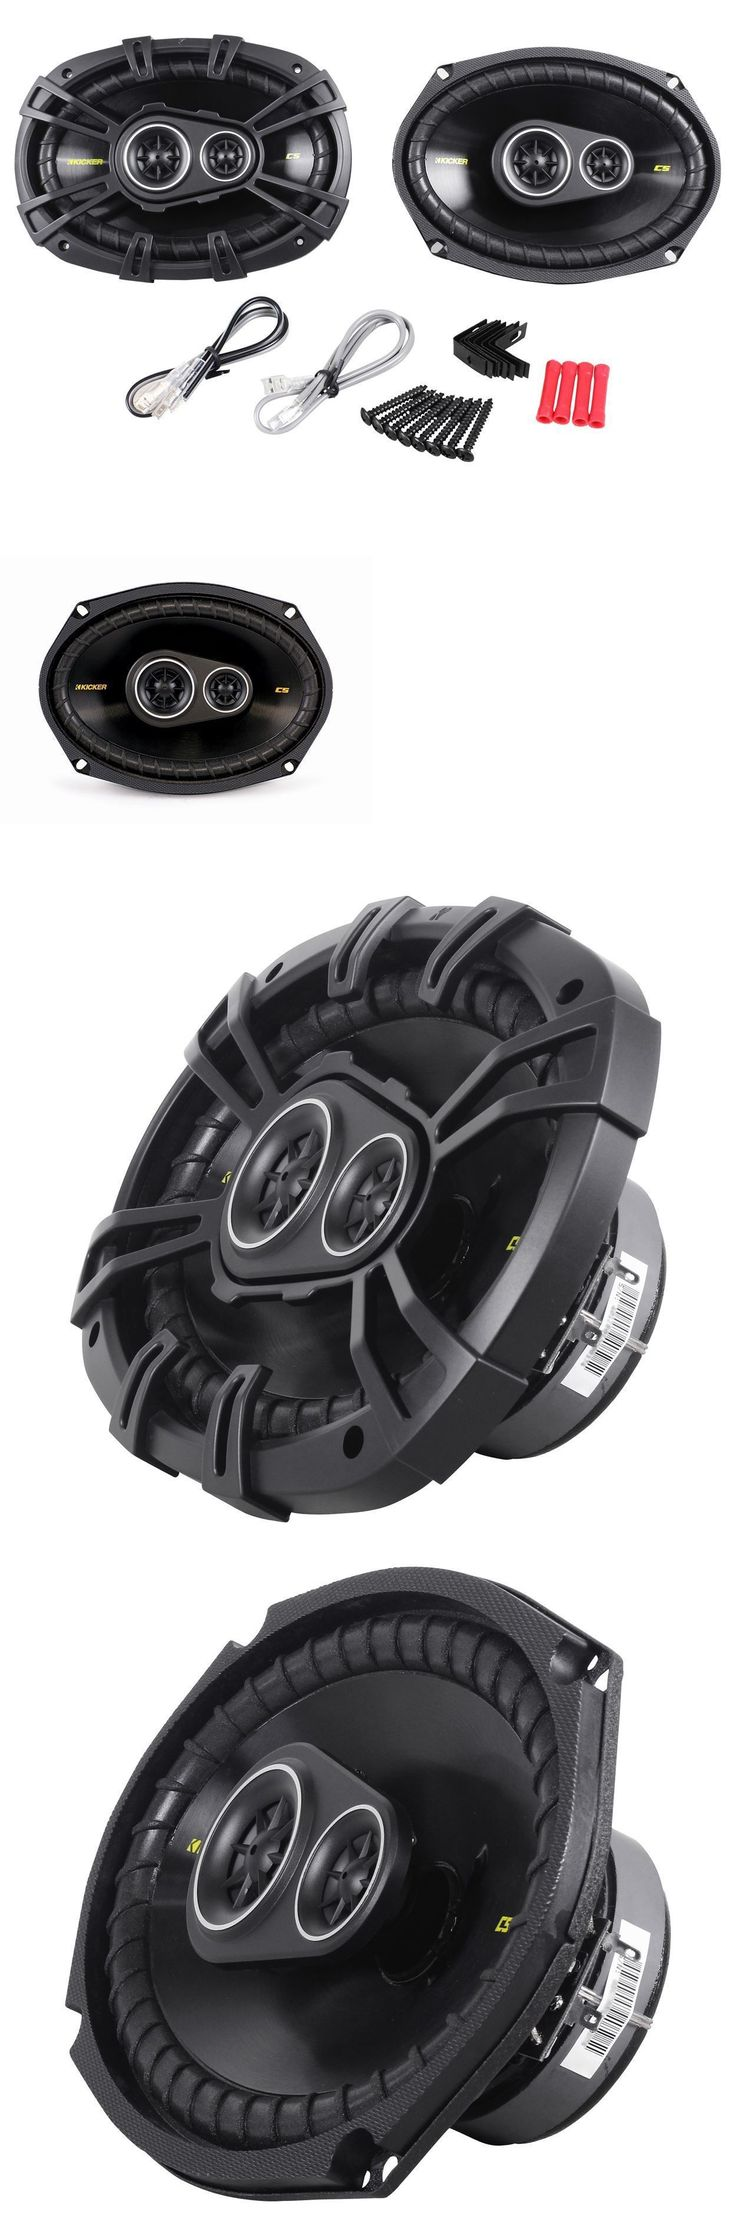 Car Speakers and Speaker Systems: Kicker 40Cs6934 Cs693 6X9 6X9 450 Watt 4-Ohm 3-Way Car Audio Coaxial Speakers BUY IT NOW ONLY: $79.95